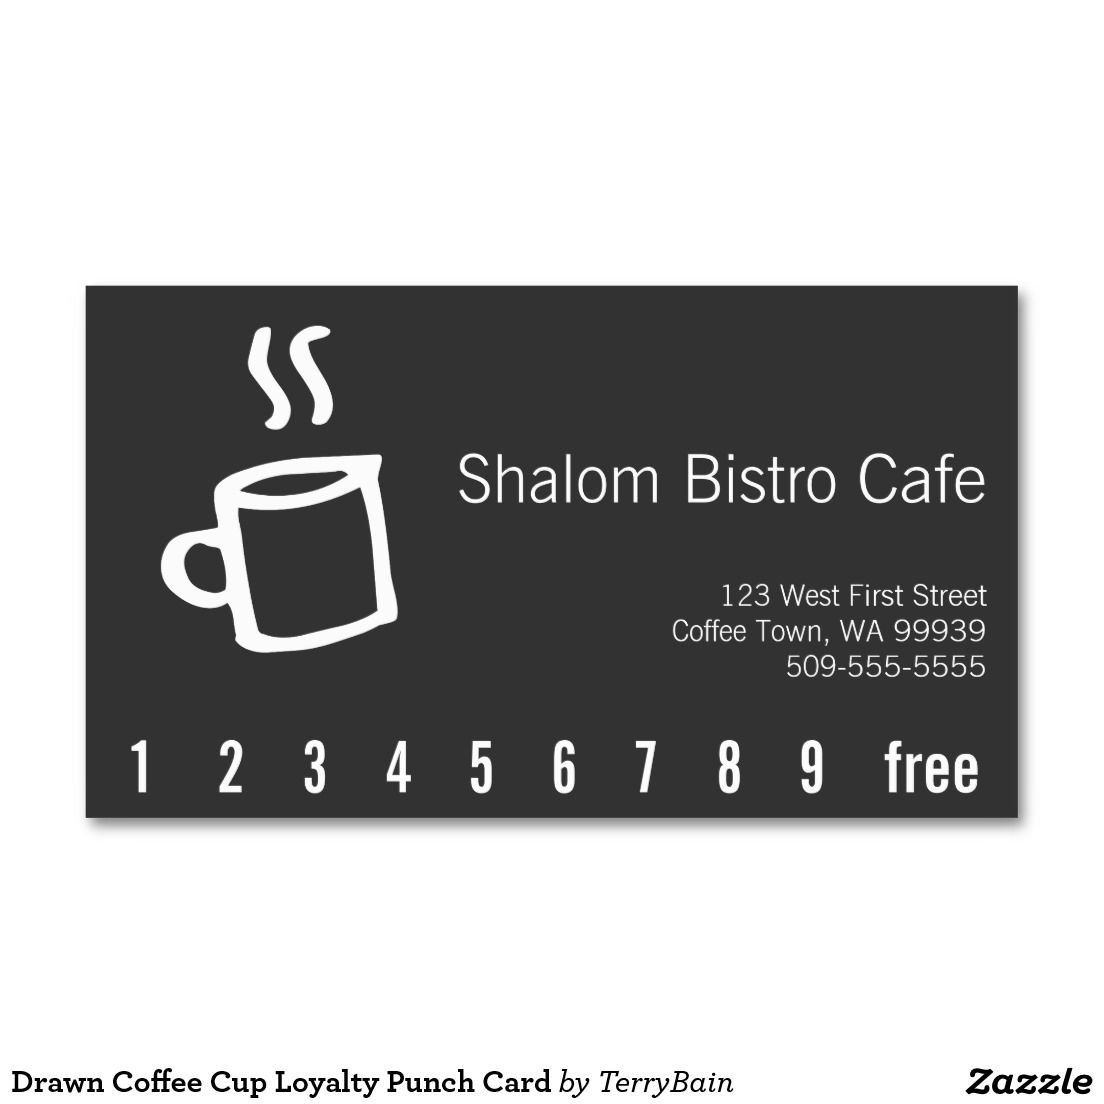 Drawn coffee cup loyalty punch card business card loyal to coffee drawn coffee cup loyalty punch card business card colourmoves